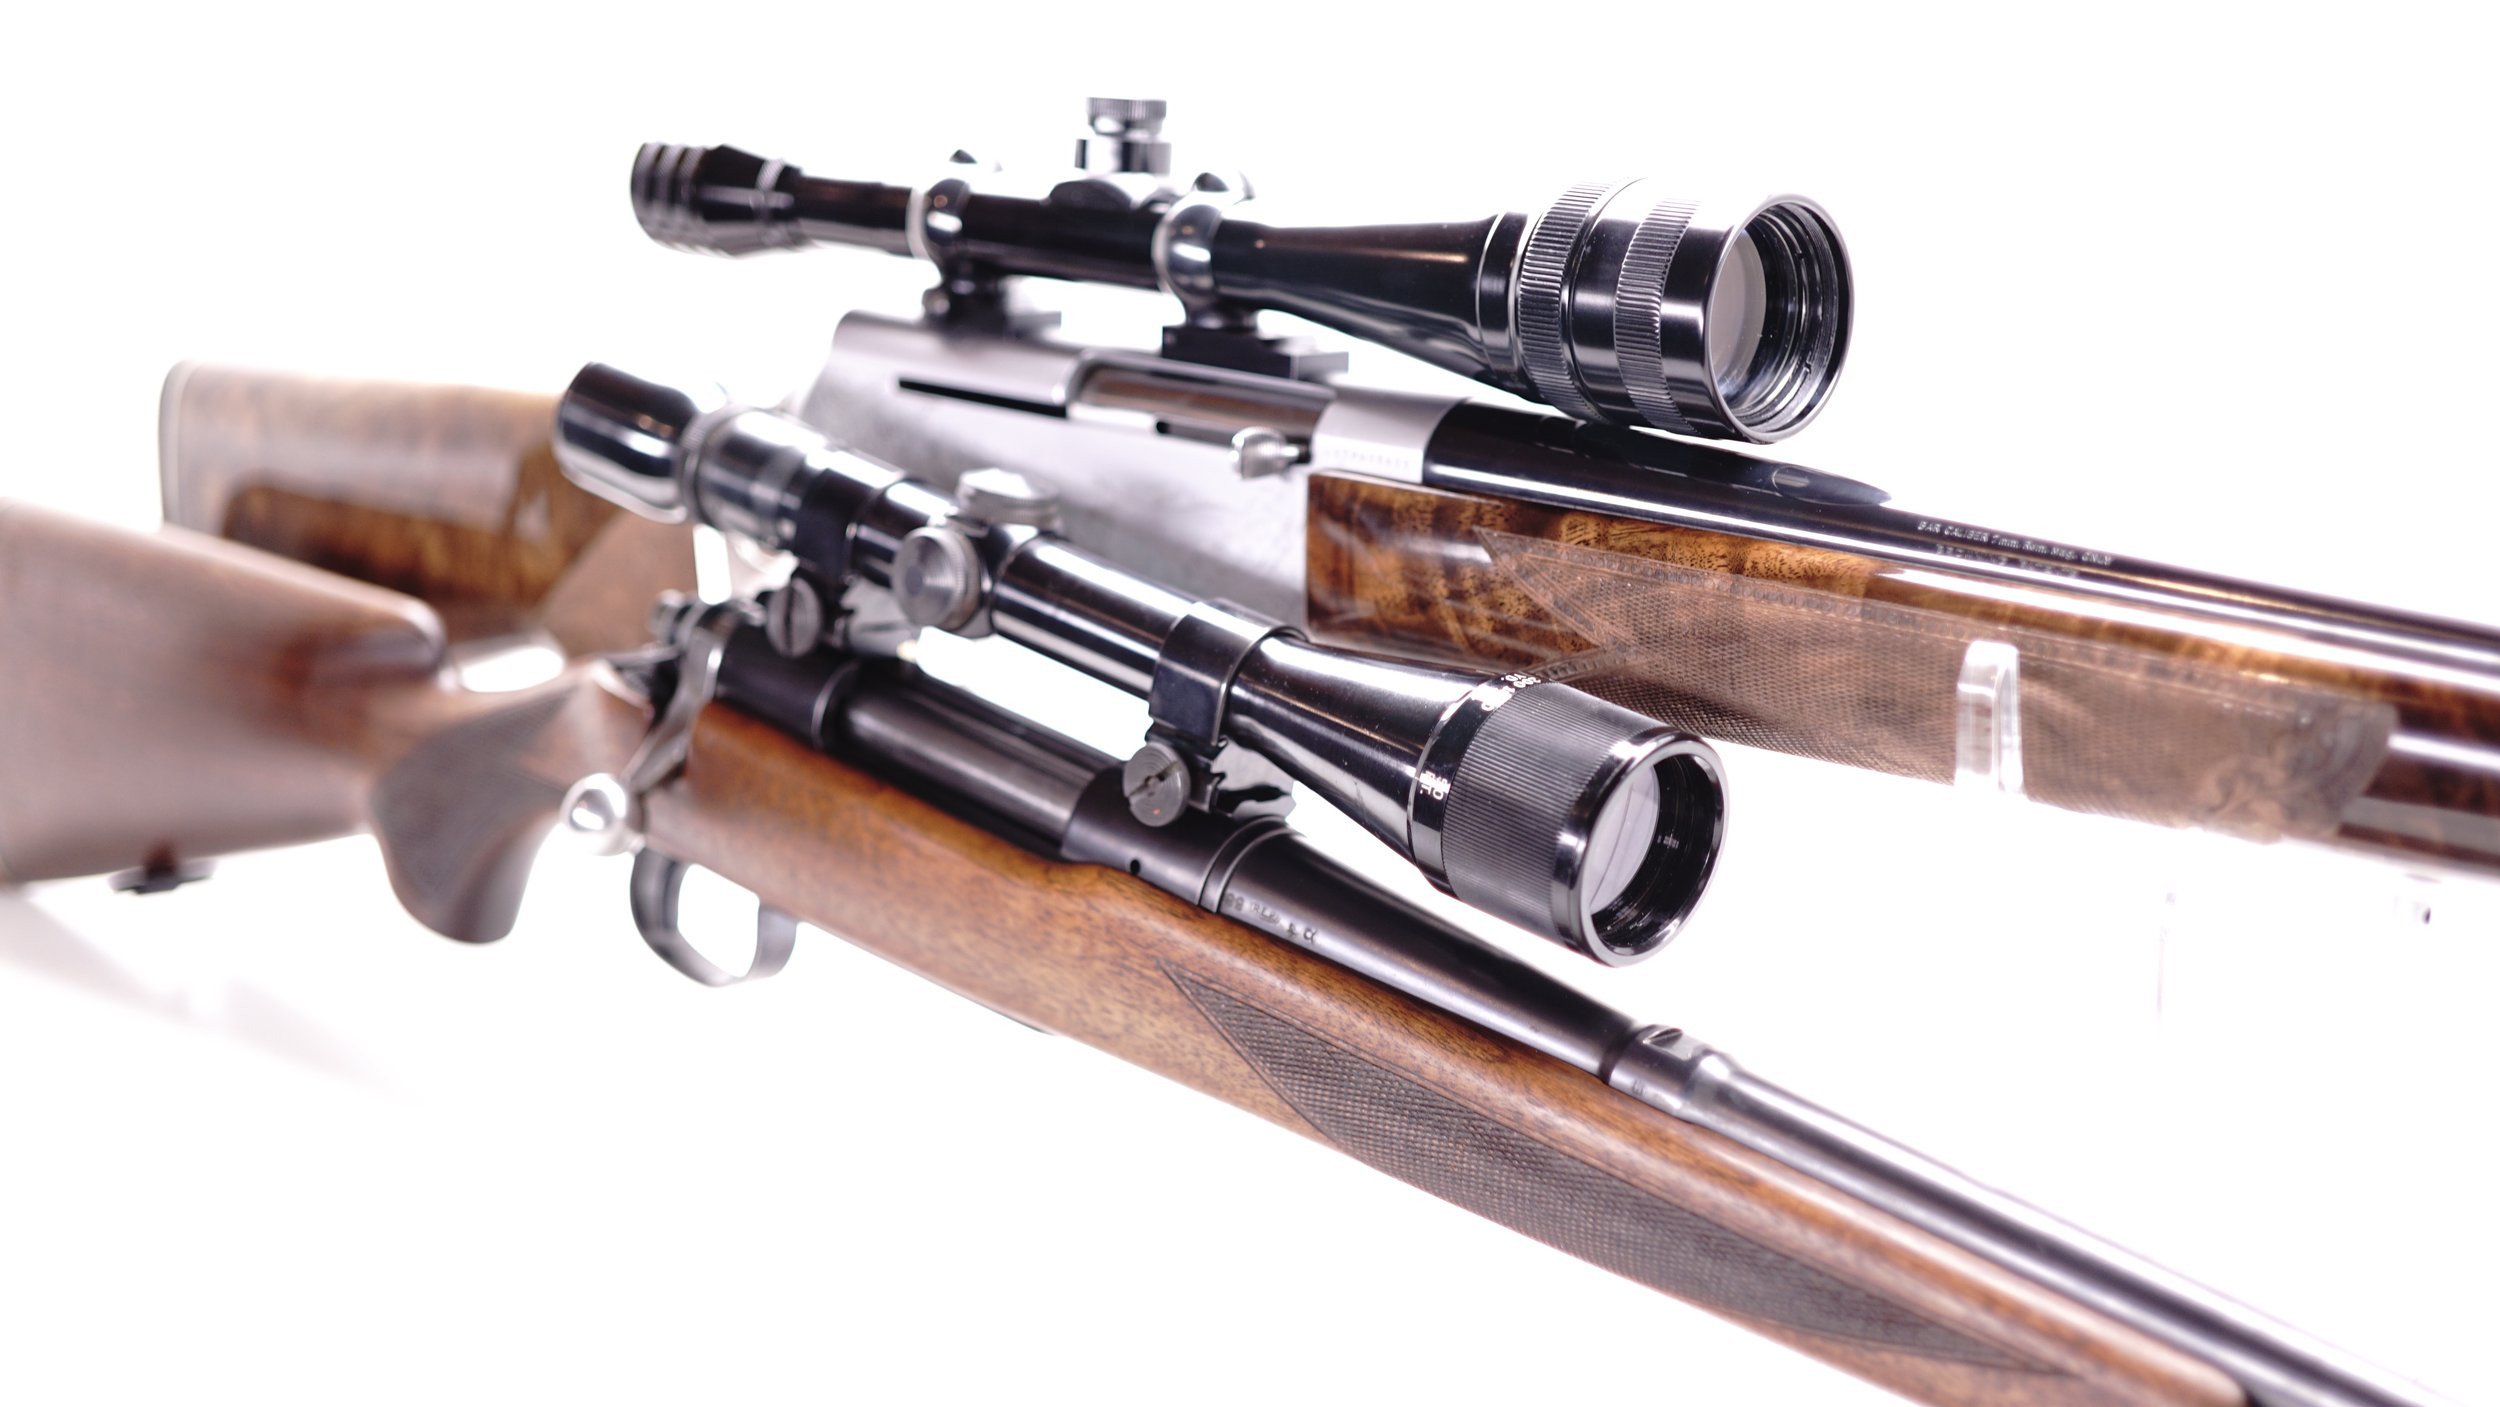 When scopes were finished to match the rifles of the day, the combinations created were each uniquely beautiful and classy.  The unique features like Redfield's Accu-Trac, Accu-Range plus TV Screens and the various retro reticle options added an element of fun to shooting that was previously missing.  Pictured above, a Browning BAR Grade IV in 7mm topped with a rare round view adjustable objective Redfield 4x12x Accu-Trac, Accu-Range.  Below is a 1949 Remington 721B in 30.06 with Weaver mounts which were introduced in the same year and a slightly later made V9 AO.